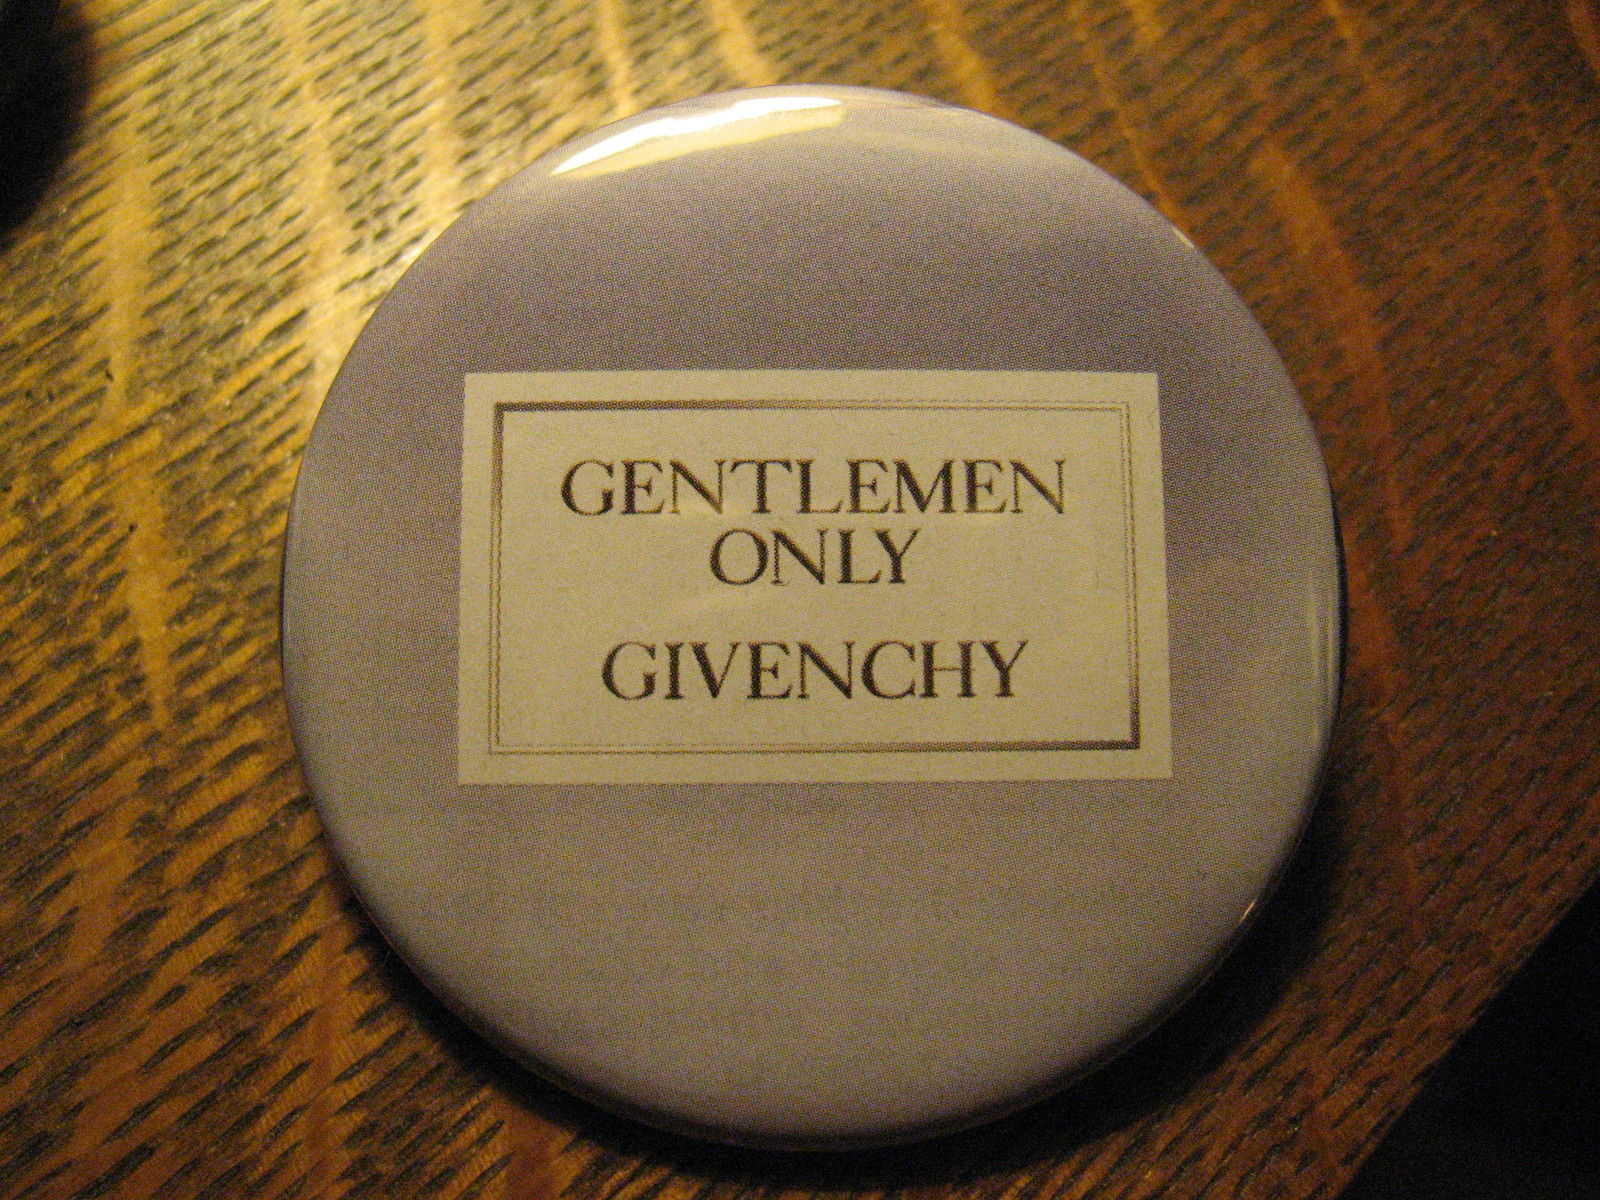 Givenchy Gentlemen Only French Designer Fragrance Advertisement Lapel Button Pin